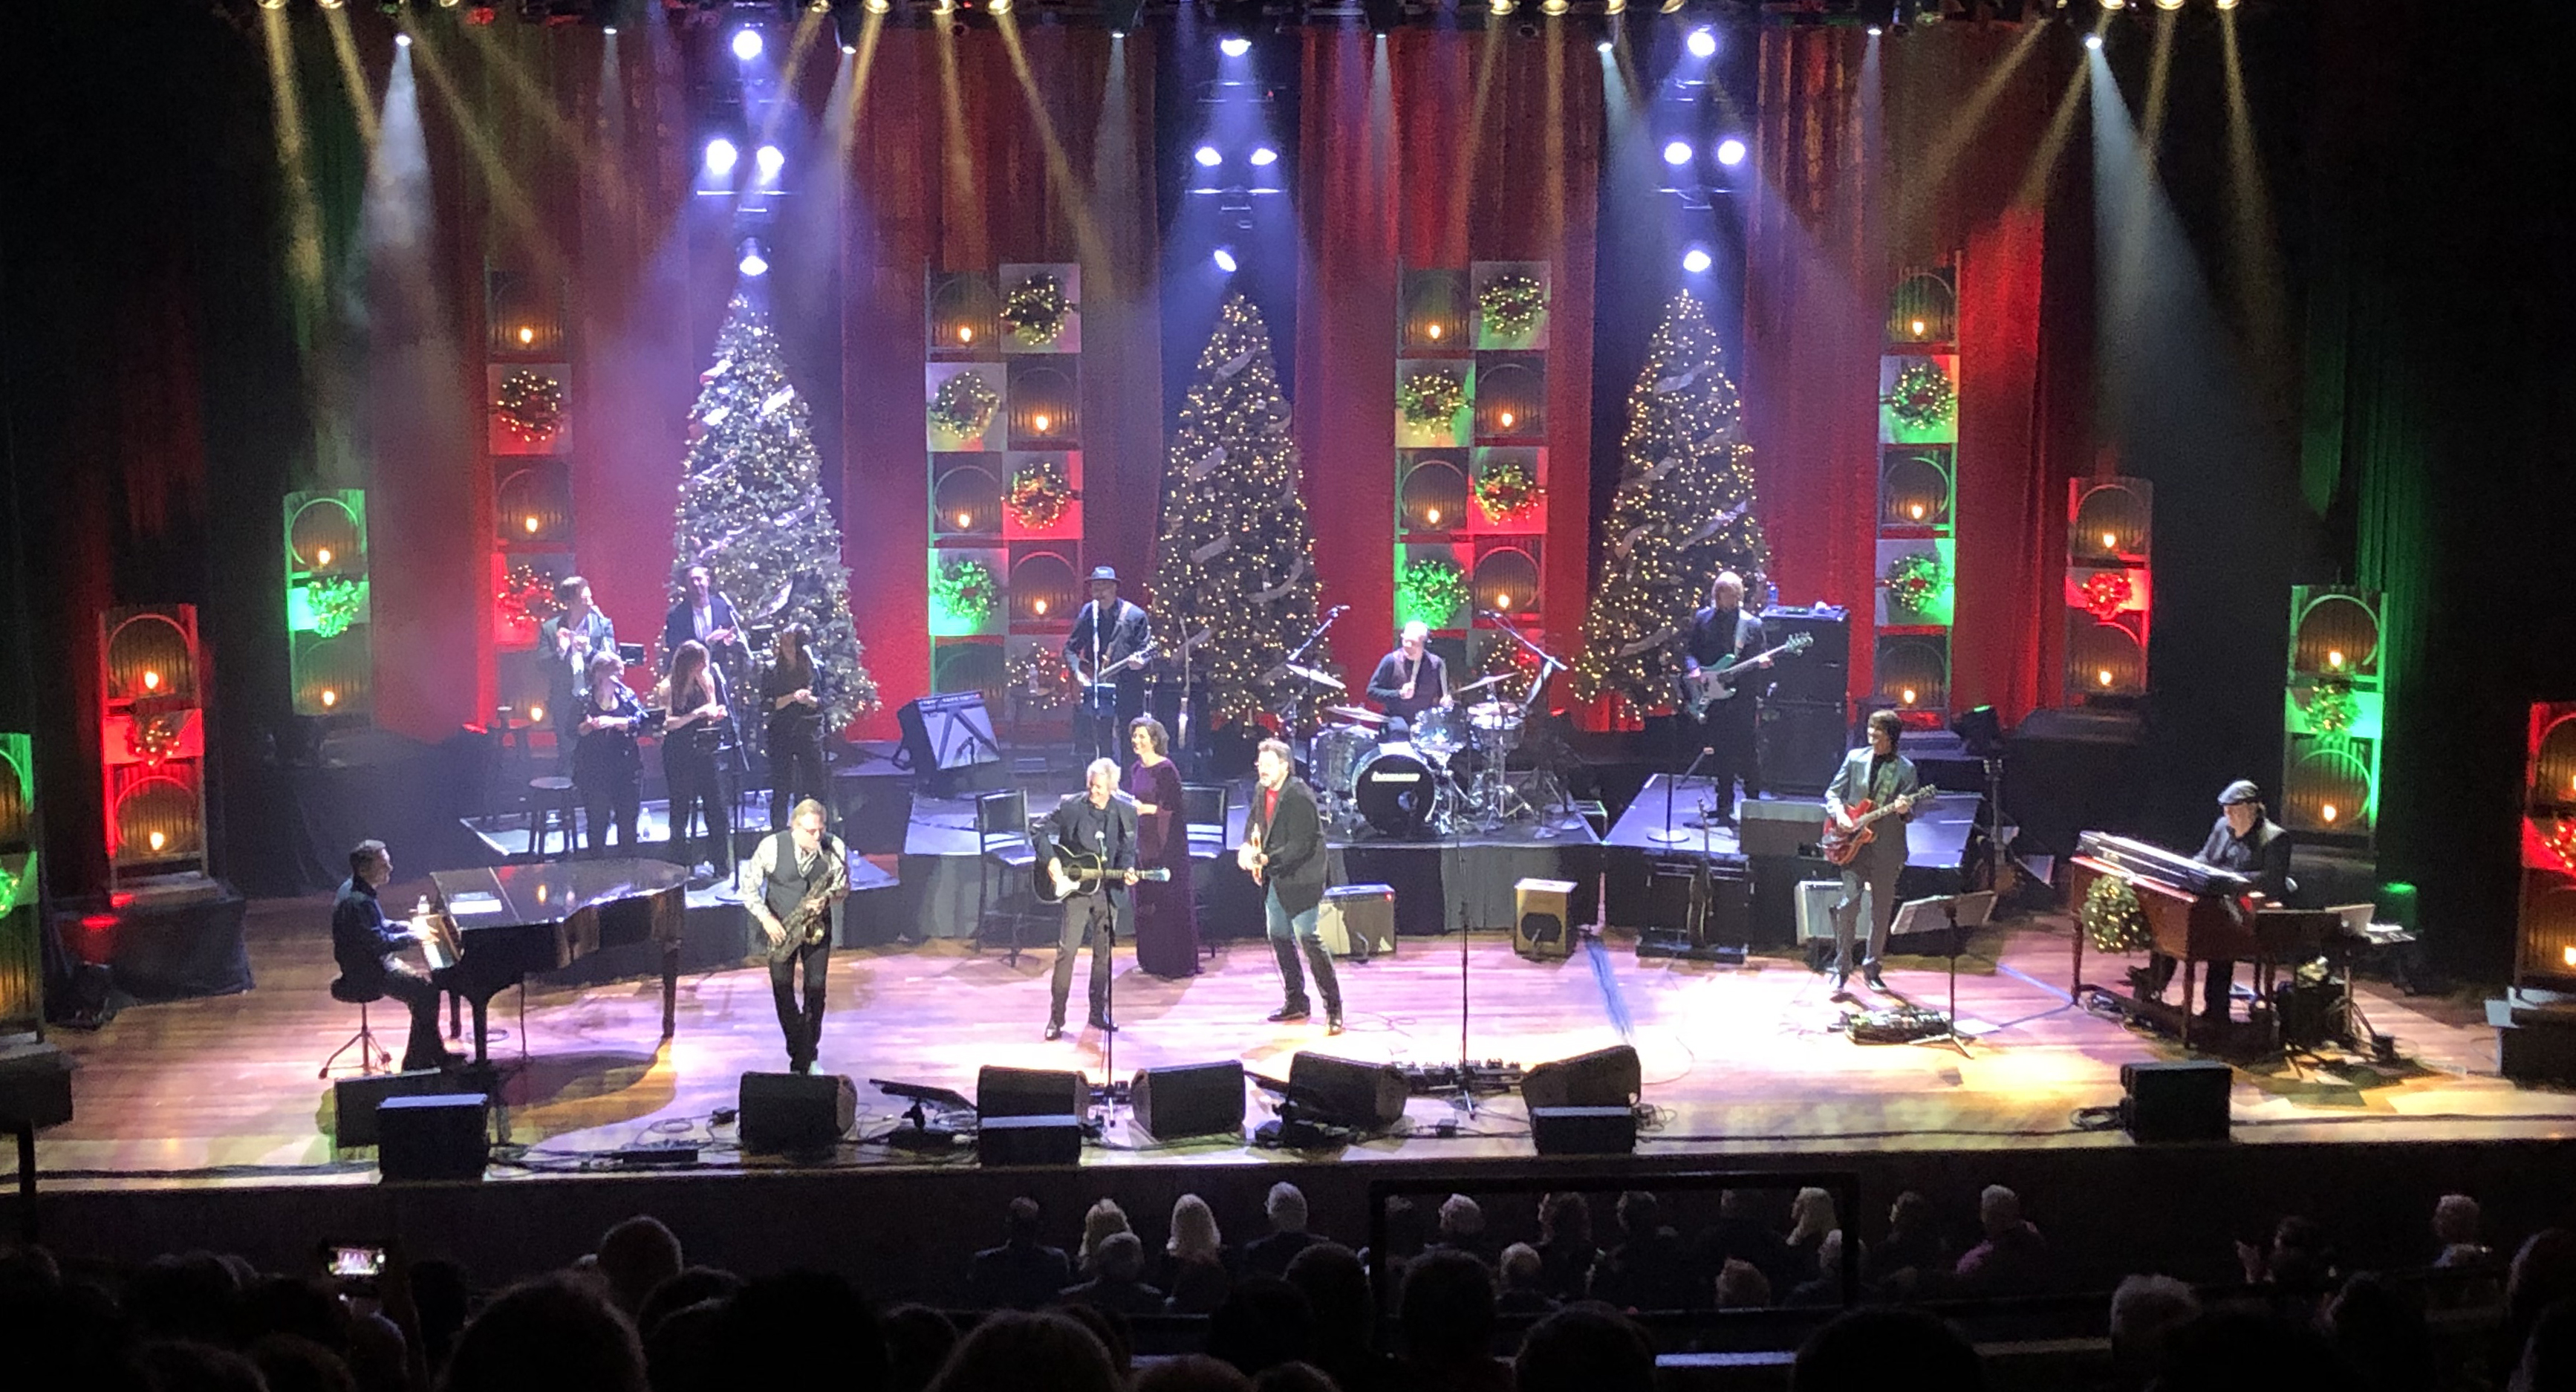 Ryman Auditorium 2020 Christmas Shows Vince Gill, Amy Grant Unleash Spectacular Talent During Ryman